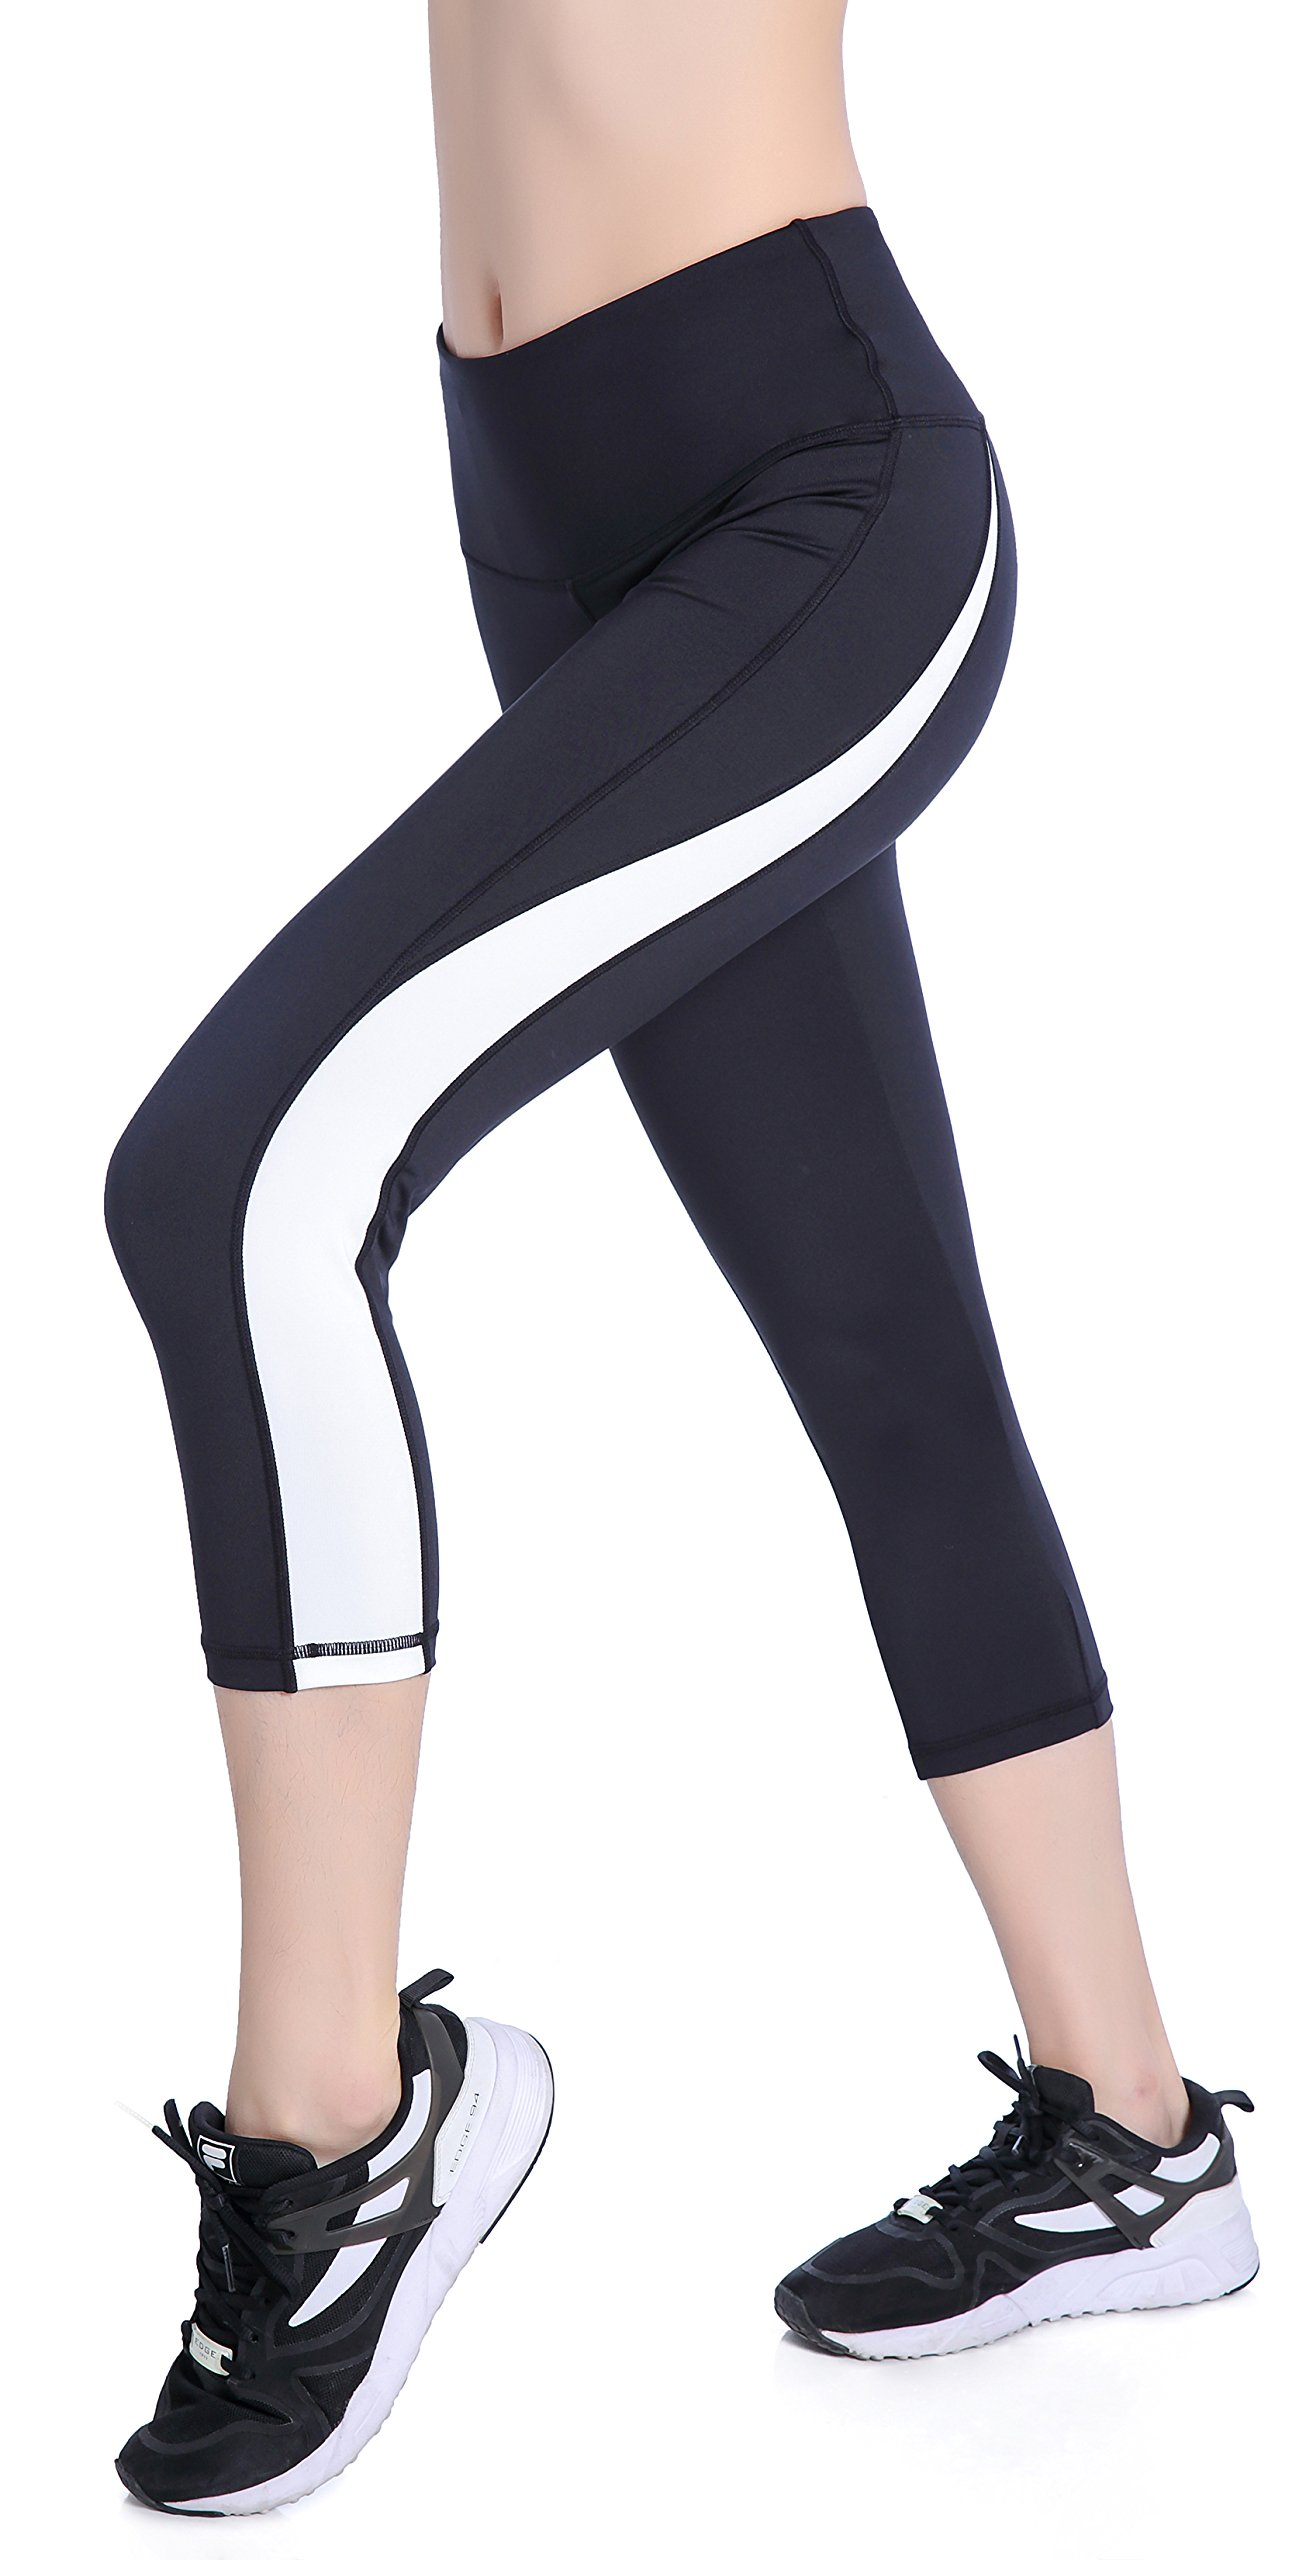 Picotee Women's Yoga Pants Workout Capri Leggings Running Tights w Side Pocket (XL, Black/White)